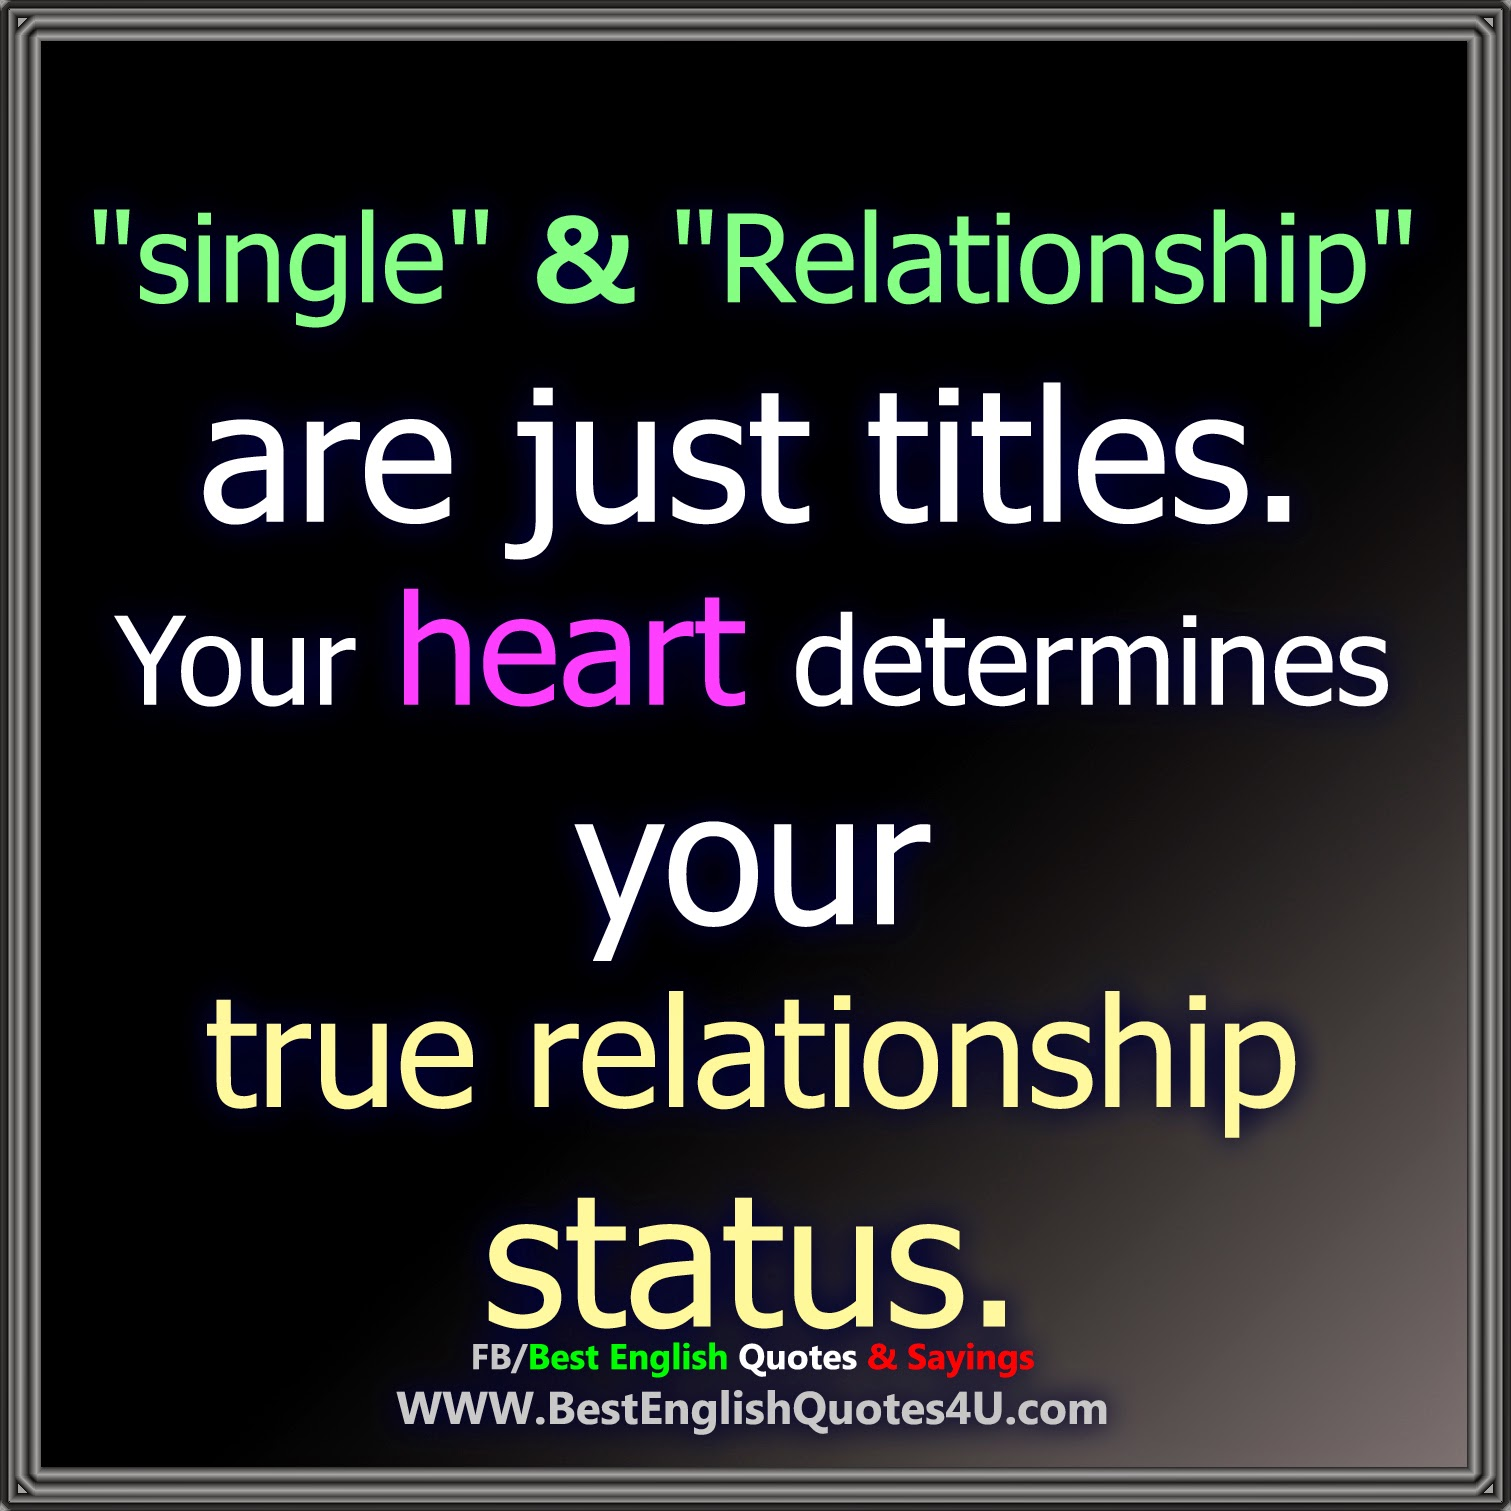 """""""single"""" And """"relationship"""" Are Just Titles  Best. Java Coffee Quotes. Motivational Quotes Quotes. Relationship Quotes Equality. Friendship Quotes In Huckleberry Finn. God Quotes In Life. Quotes About Love You Deserve. Song Lyric Quotes Yahoo Answers. Country Heartbreak Quotes"""